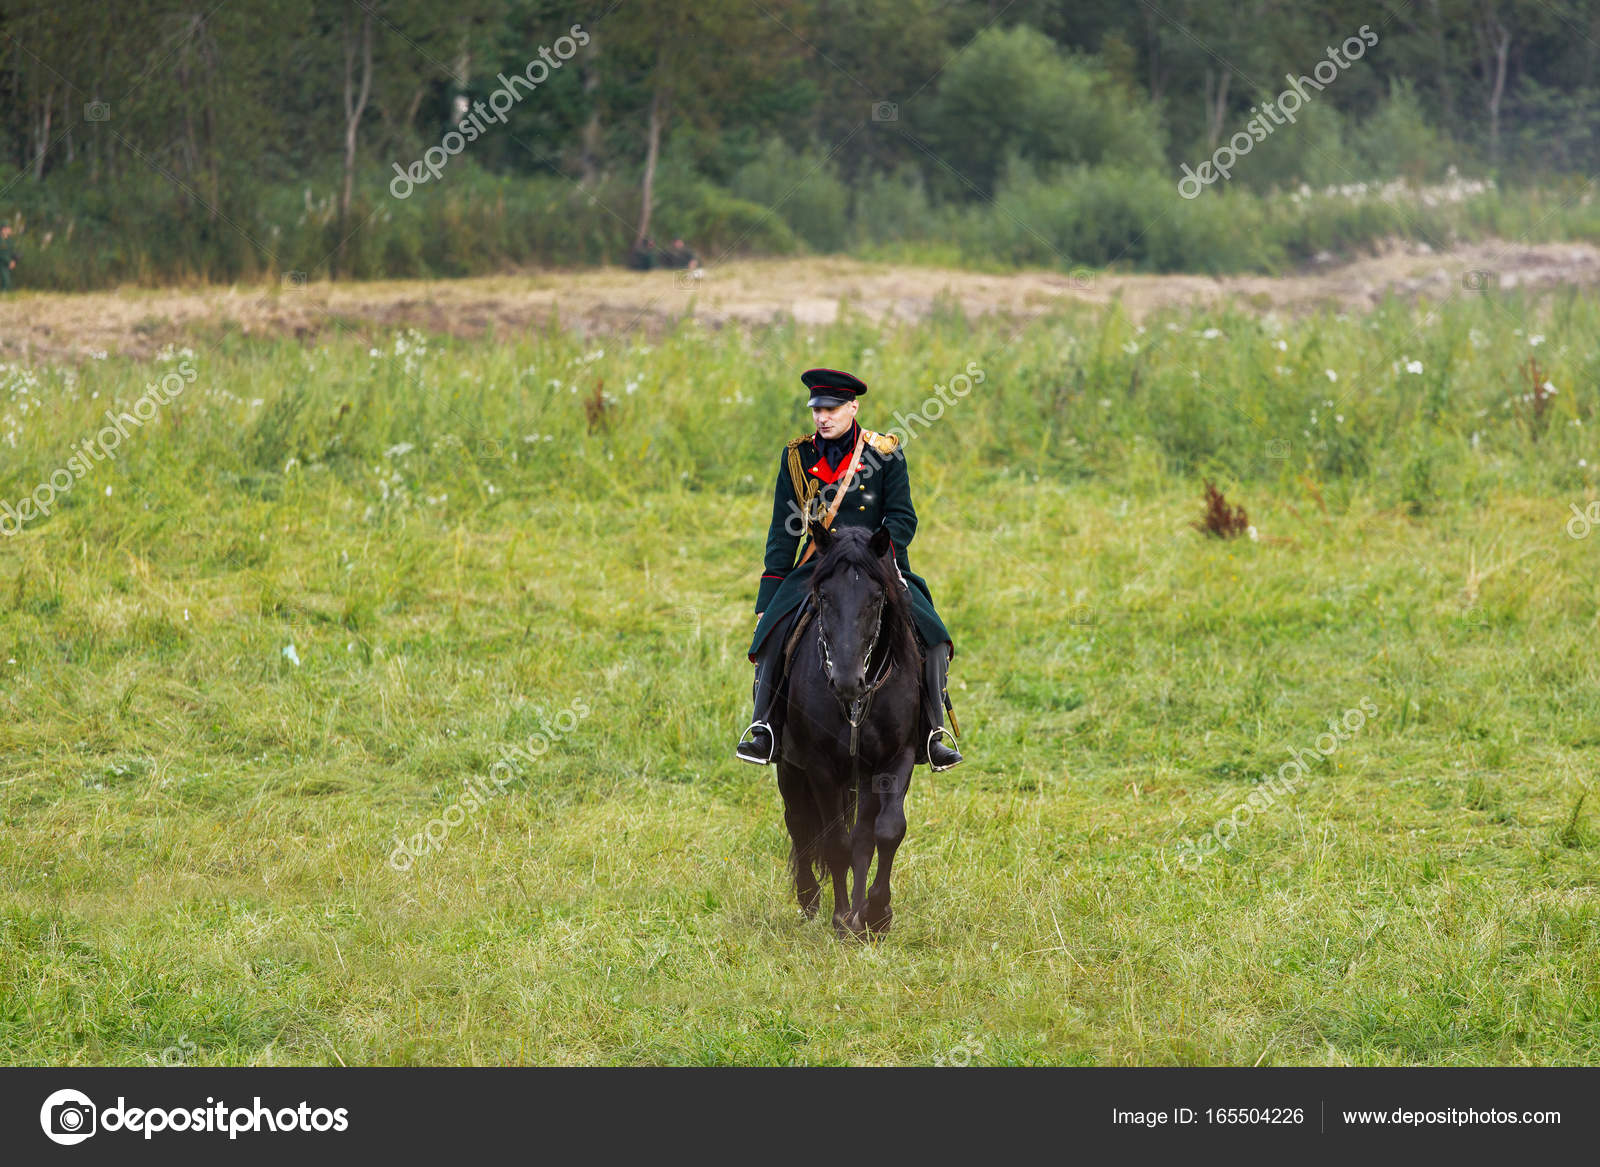 BORODINO, RUSSIA - September 02, 2017 - Reenactment of the battle of